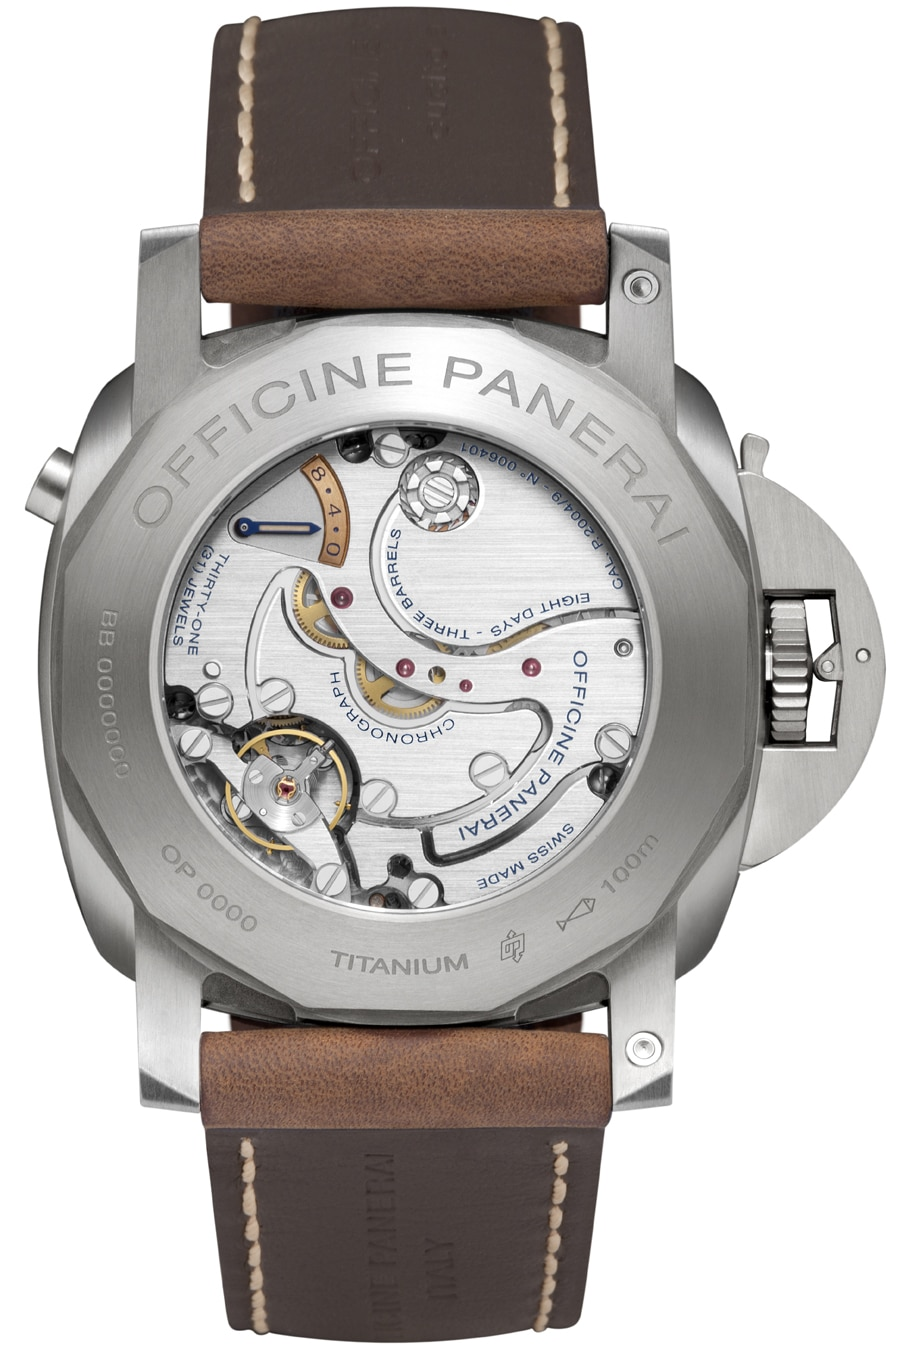 Panerai: Luminor 1950 Chrono Monopulsante Left-Handed, Rückseite